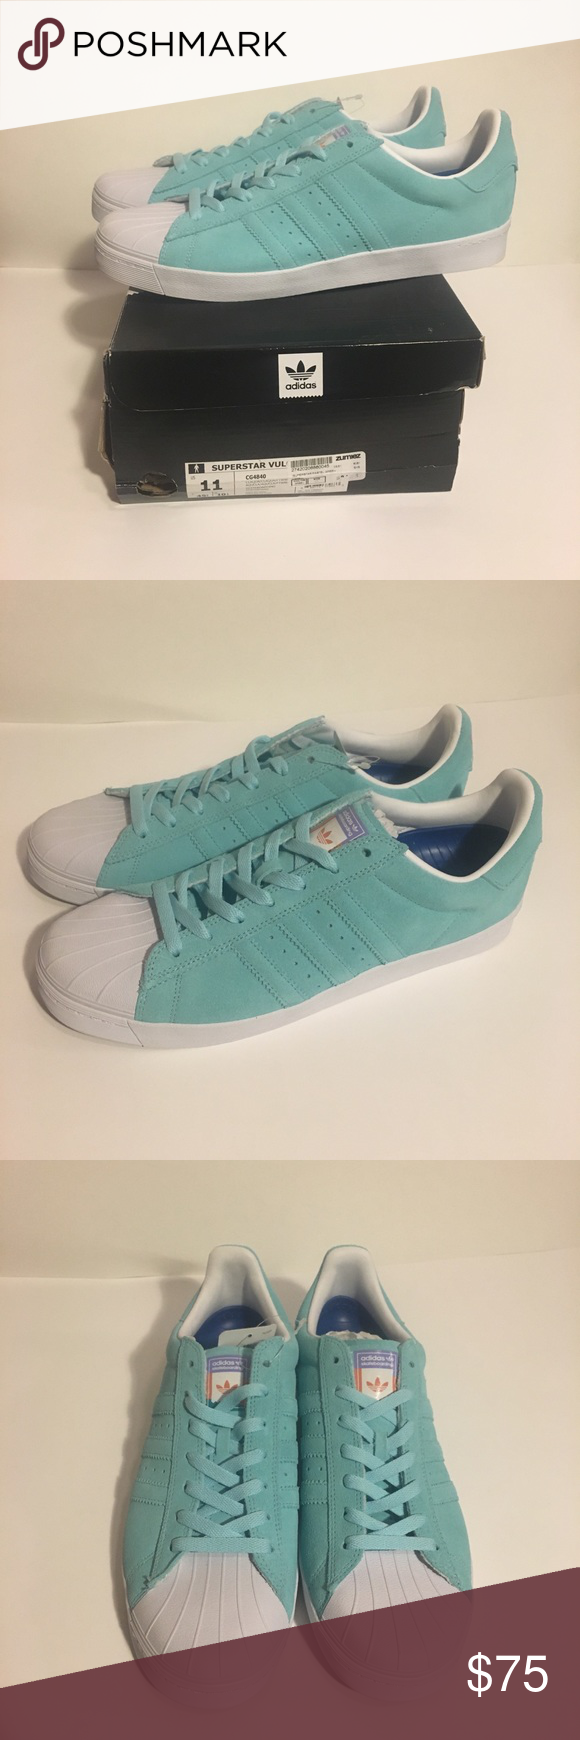 6bfe344bf08d Adidas Superstar Vulc ADV Pastel Blue Shoes New with box Superstar Vulc ADV  Pastel Blue Shoes